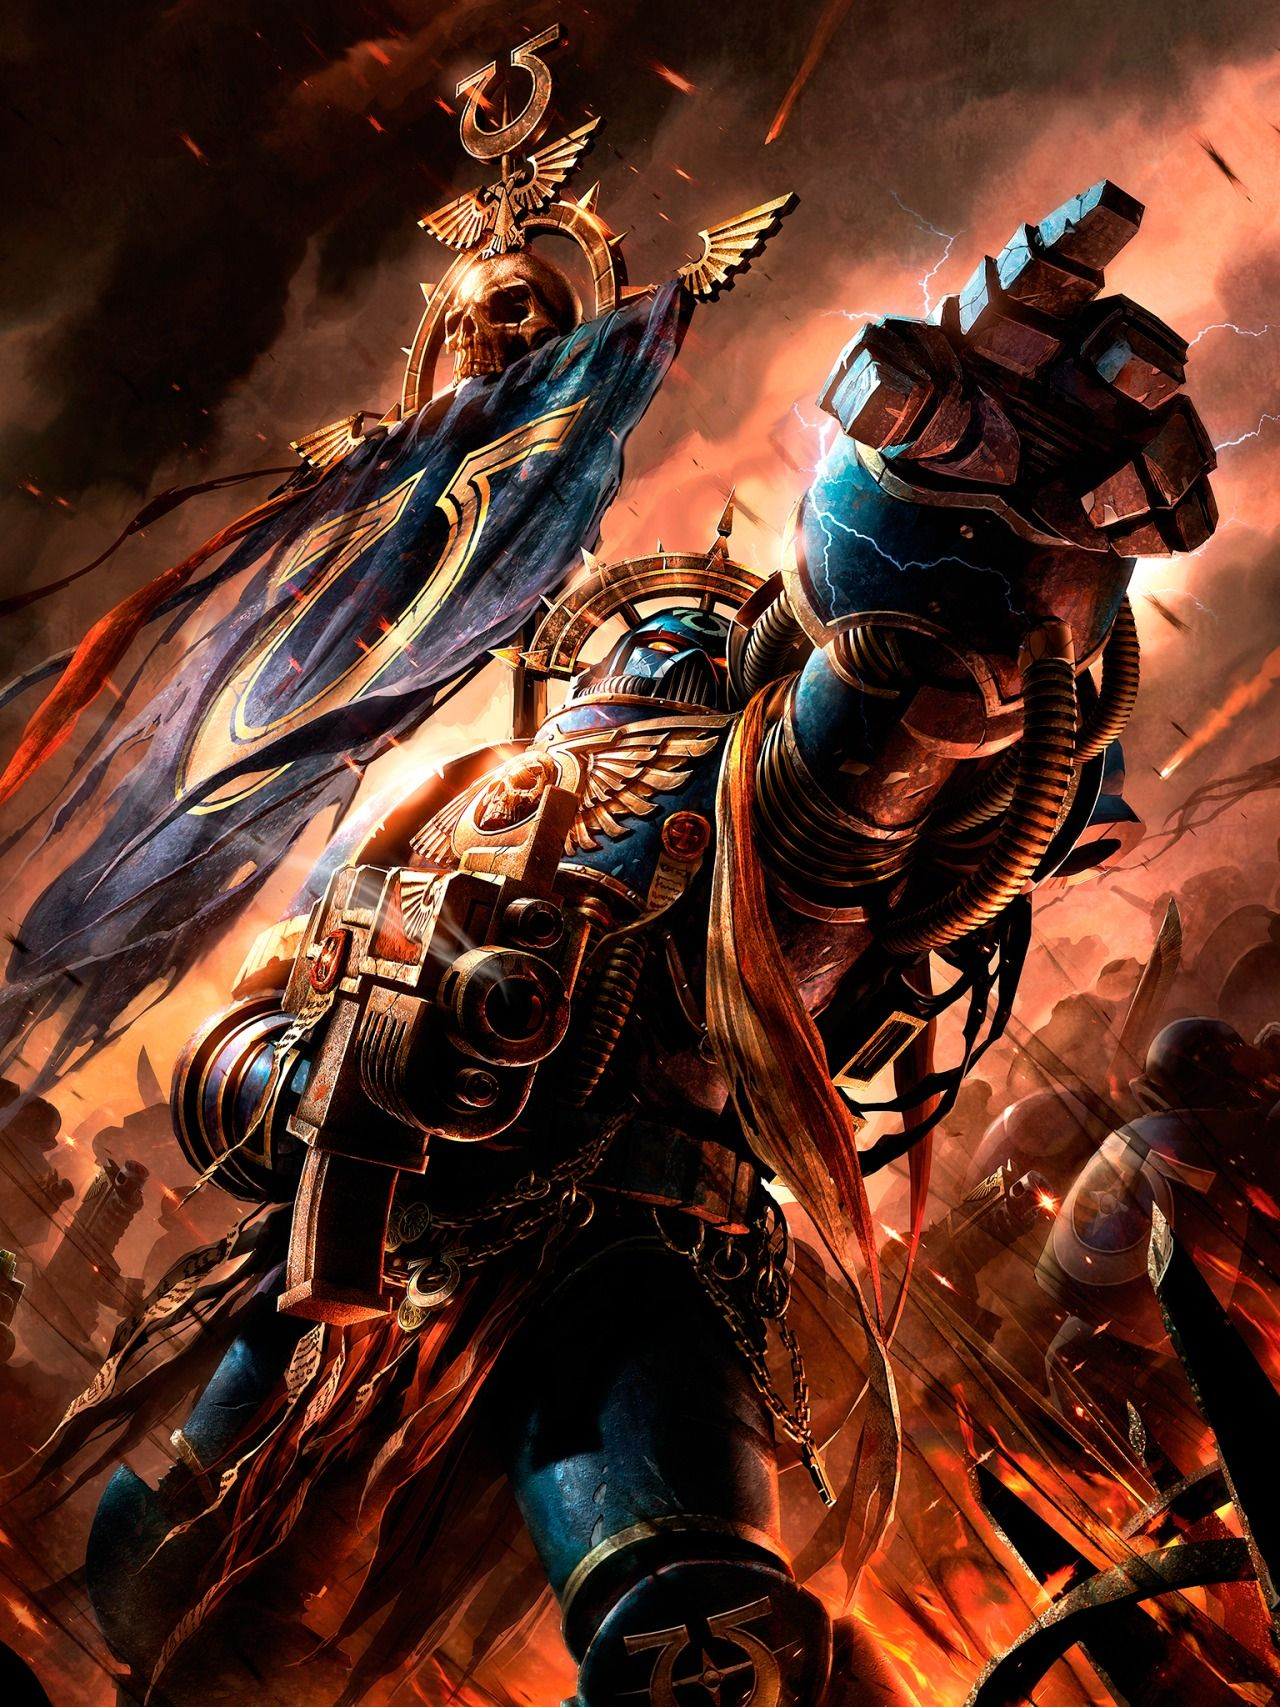 Warhammer 40k death company wallpaper - Why Yes I Am A Staunch Imperial And Yes I Did Buy The Imperial Codex Wallpaper Pack Tomorrow It Will Be A New Year And We Ll Start Looking At The Art Of